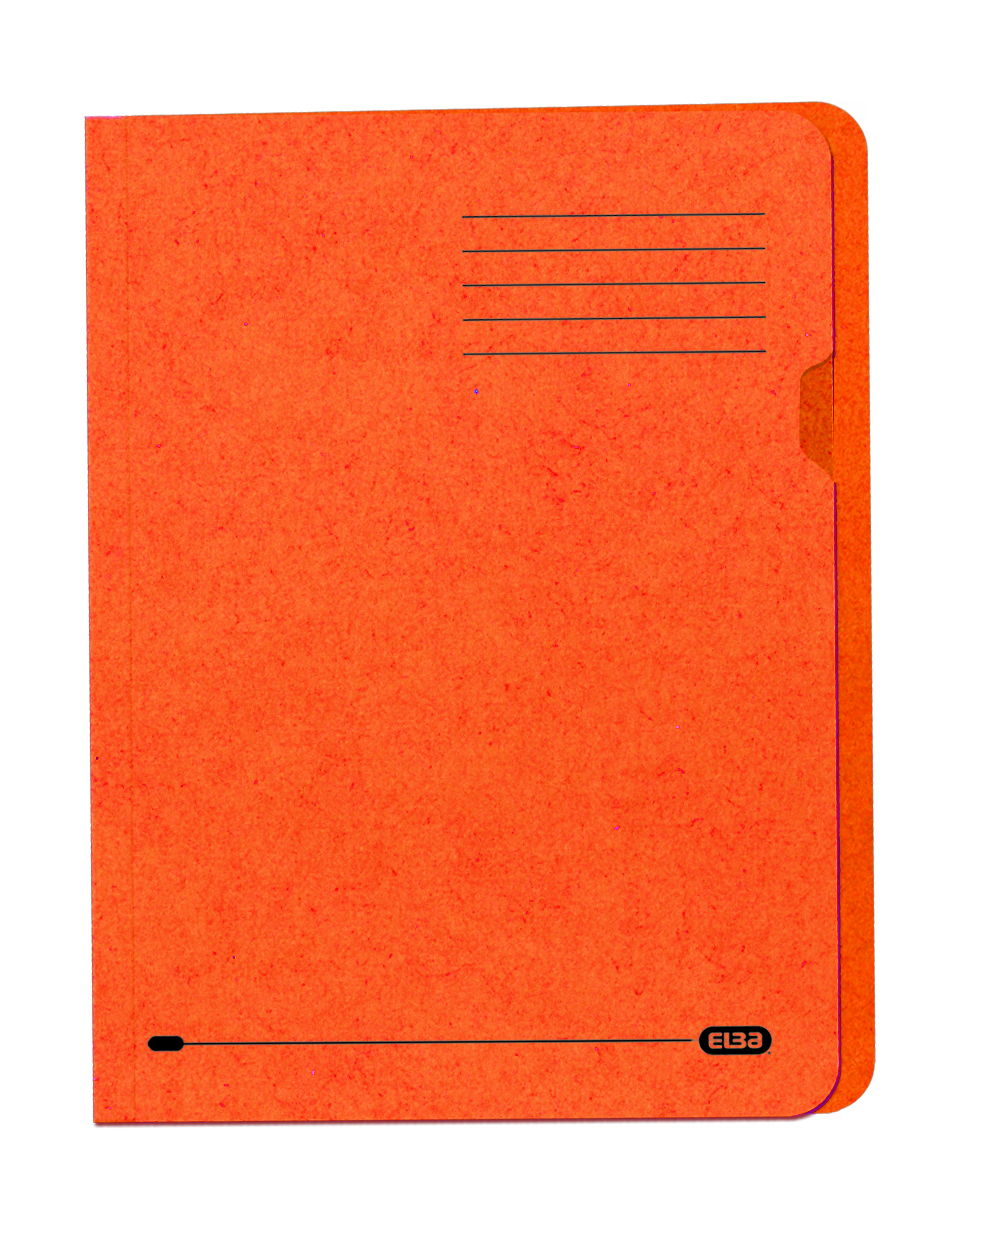 Elba Square Cut Folder Recycled Heavyweight 290gsm Foolscap Orange Ref 100090220 [Pack 100]